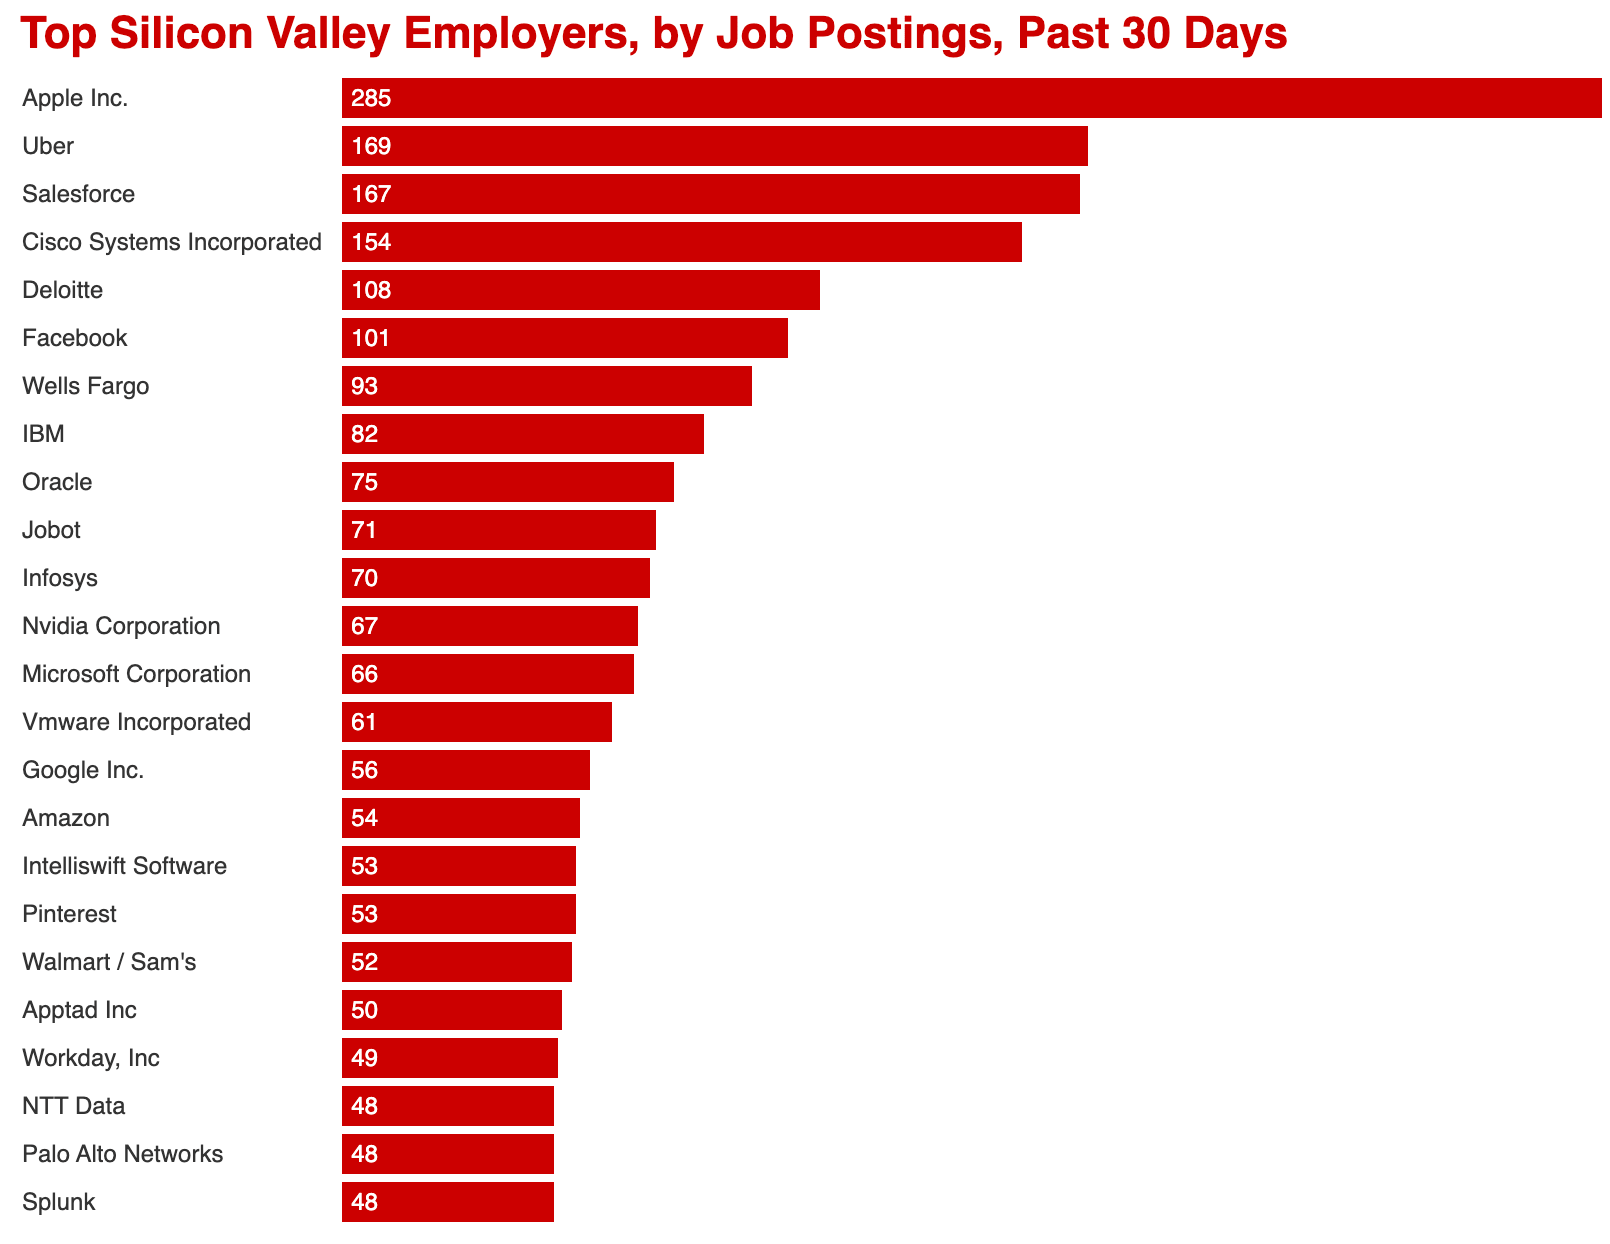 Top Silicon Valley Employers, by Job Postings, Past 30 Days